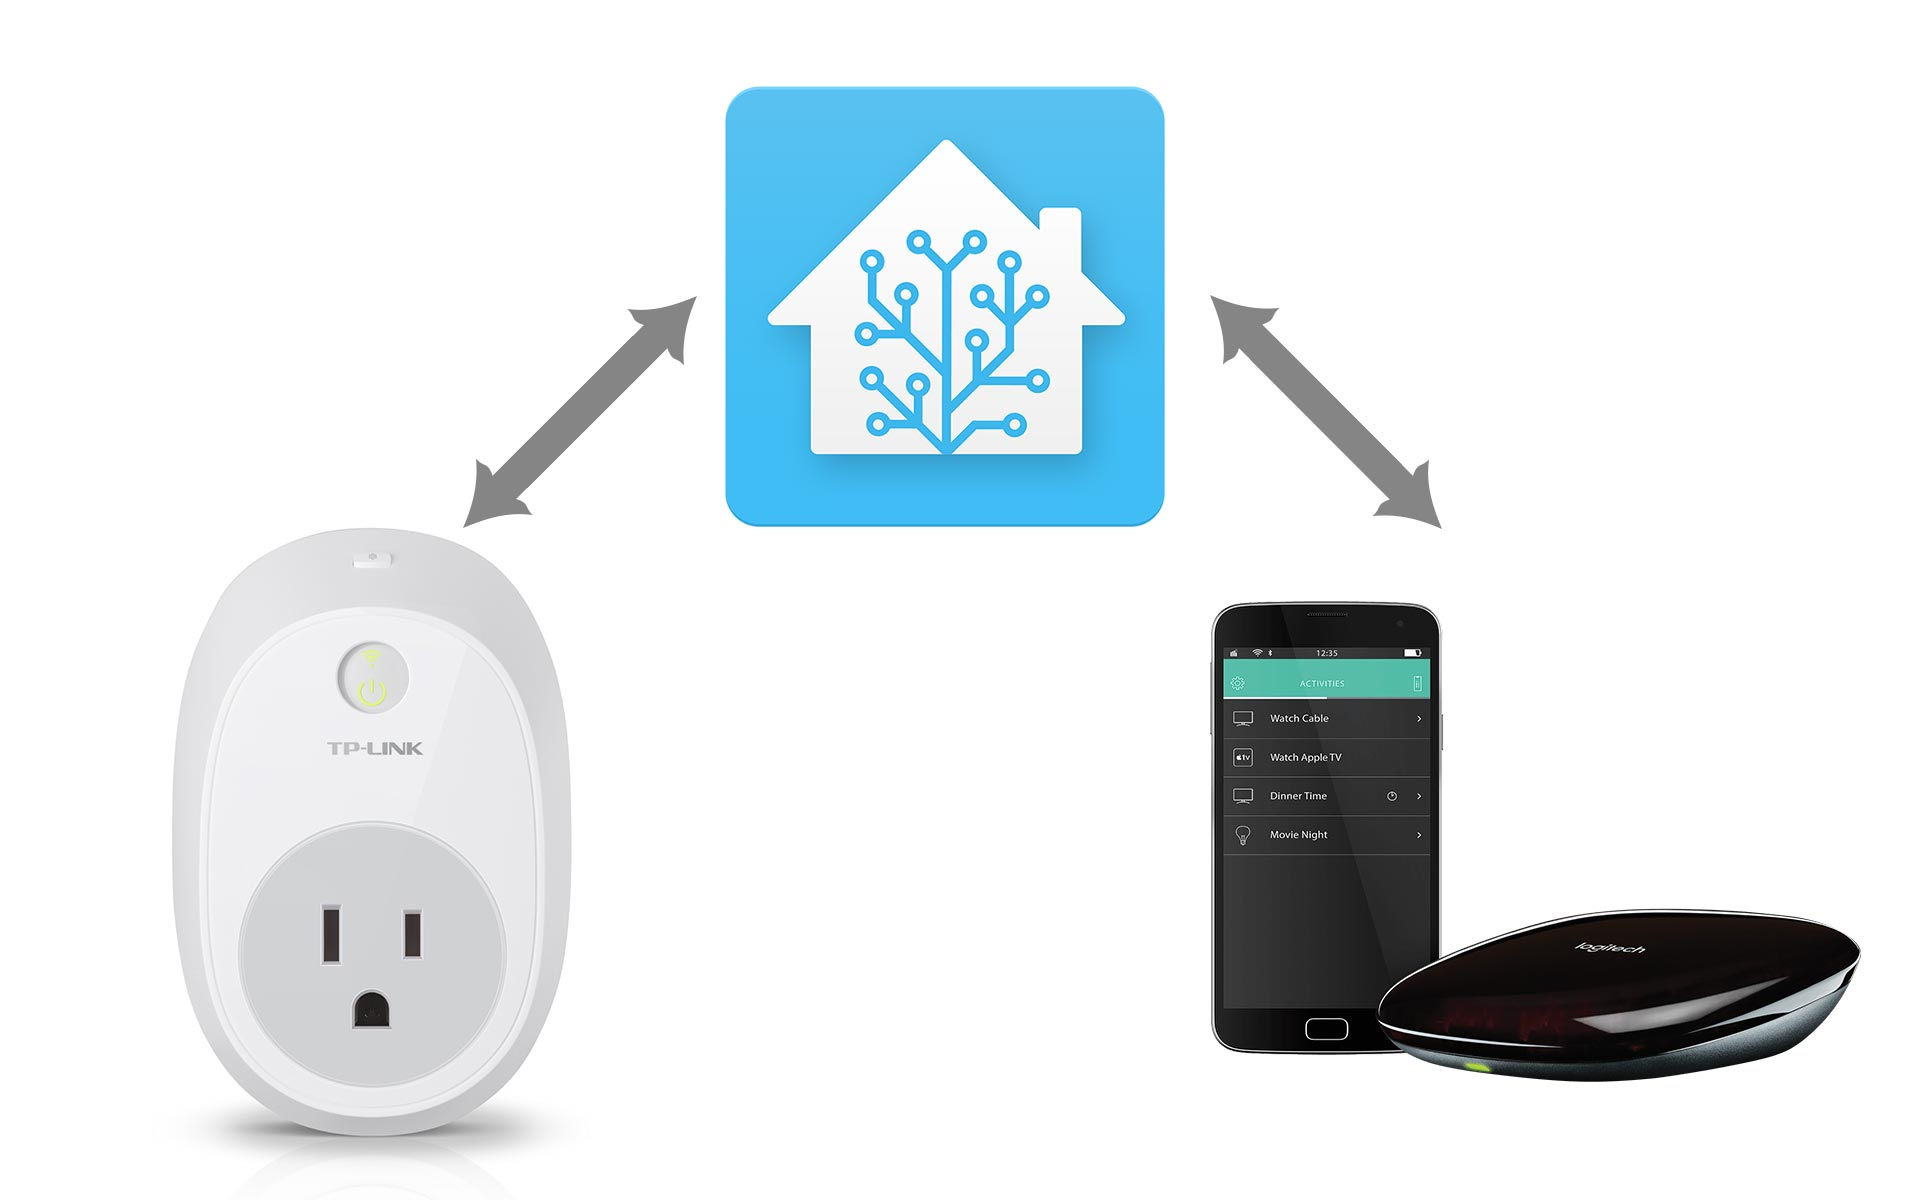 Control TP-Link Smart Plug with Harmony Hub via Emulated Hue